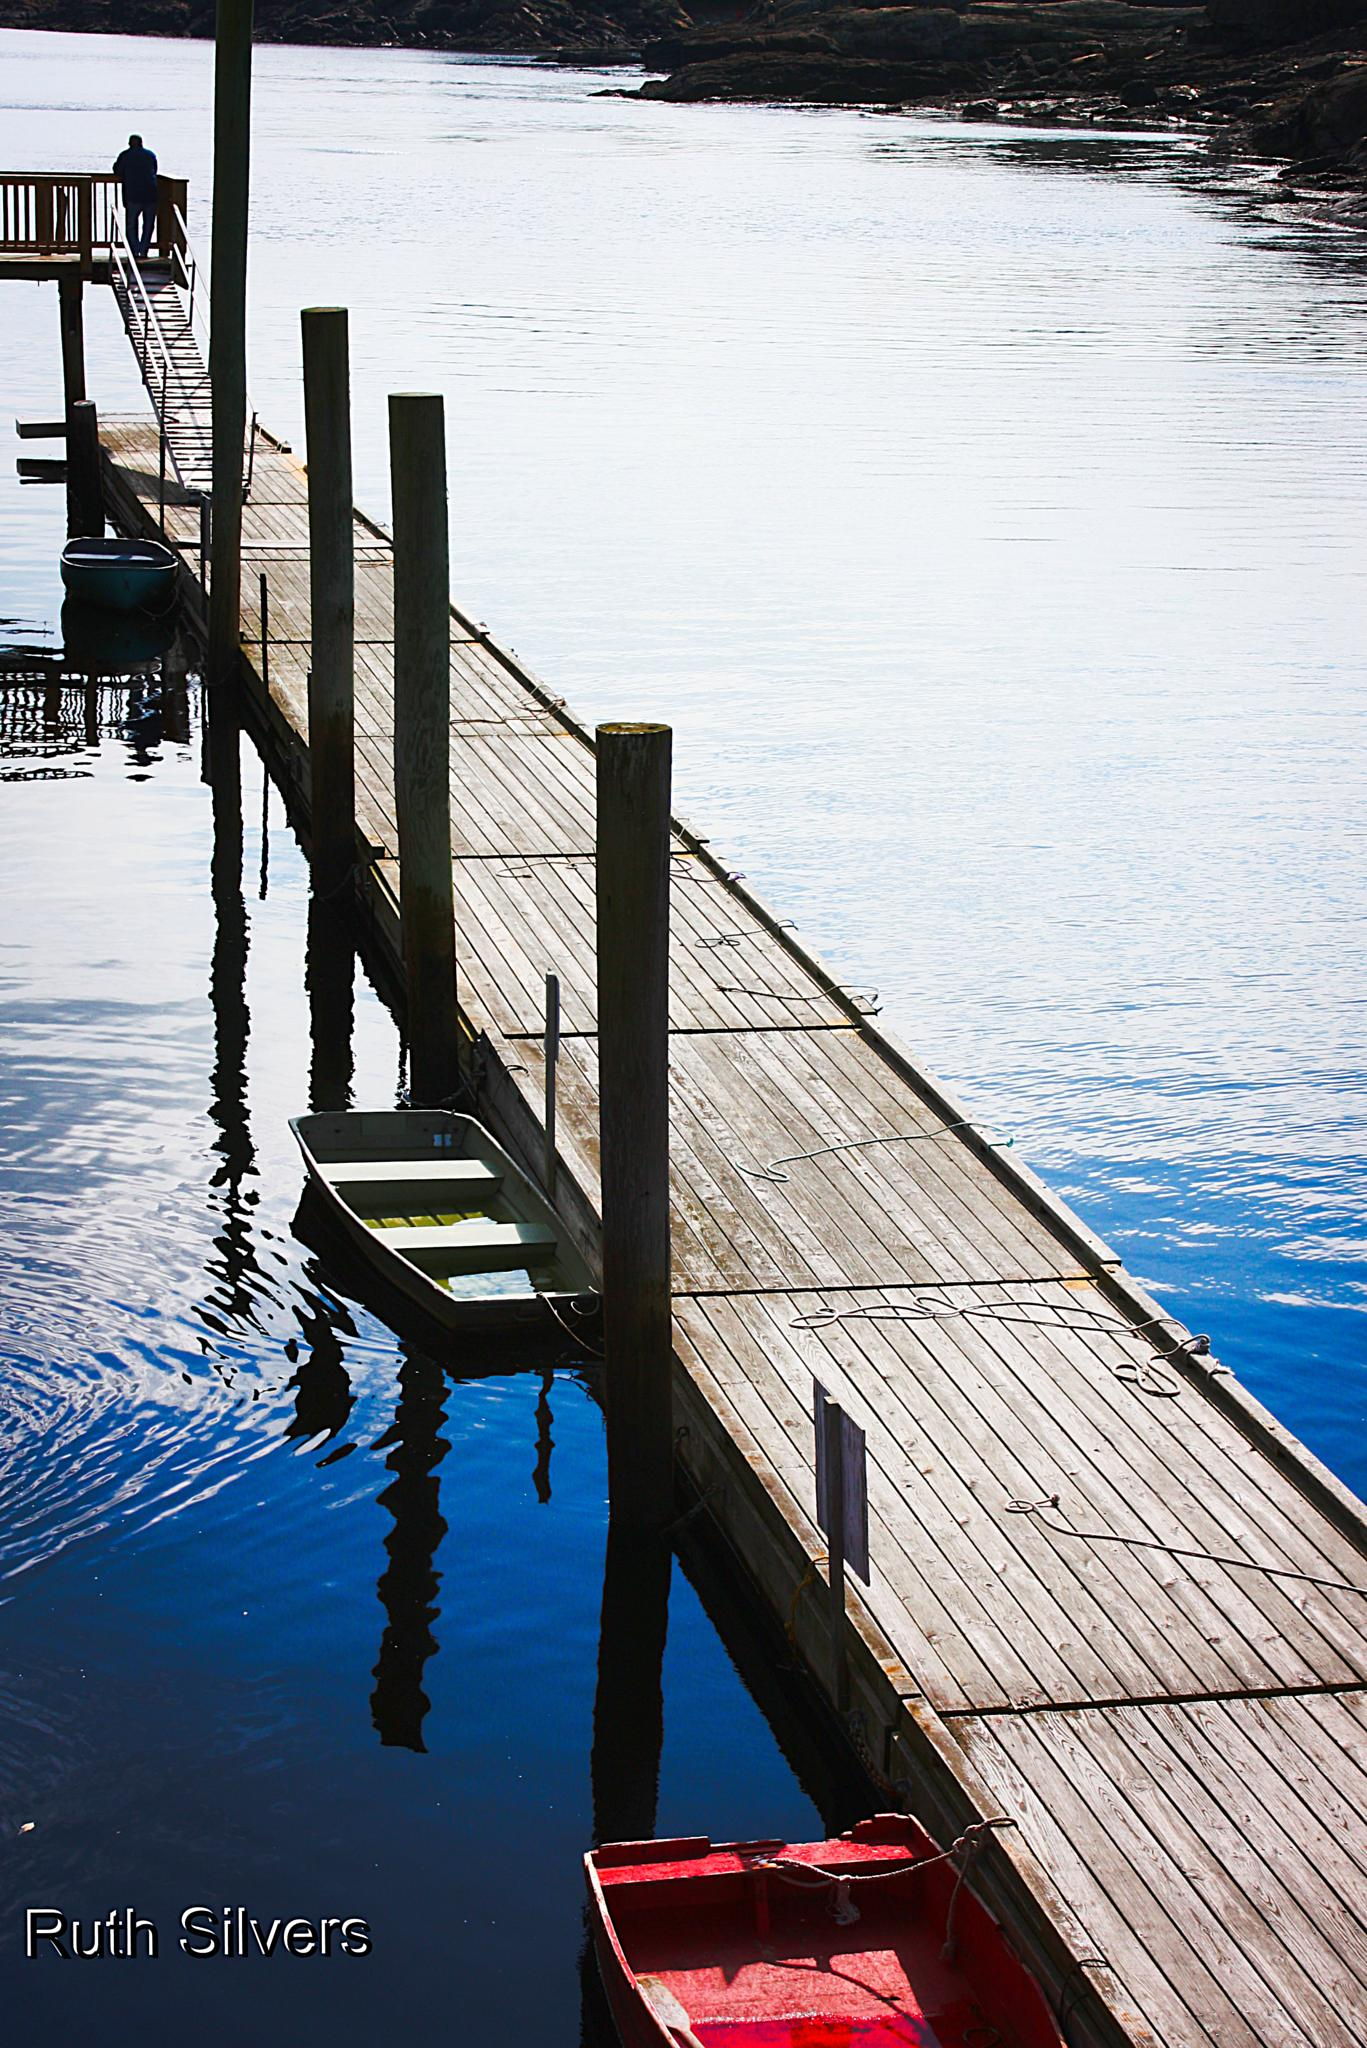 On the dock by Ruth Silvers